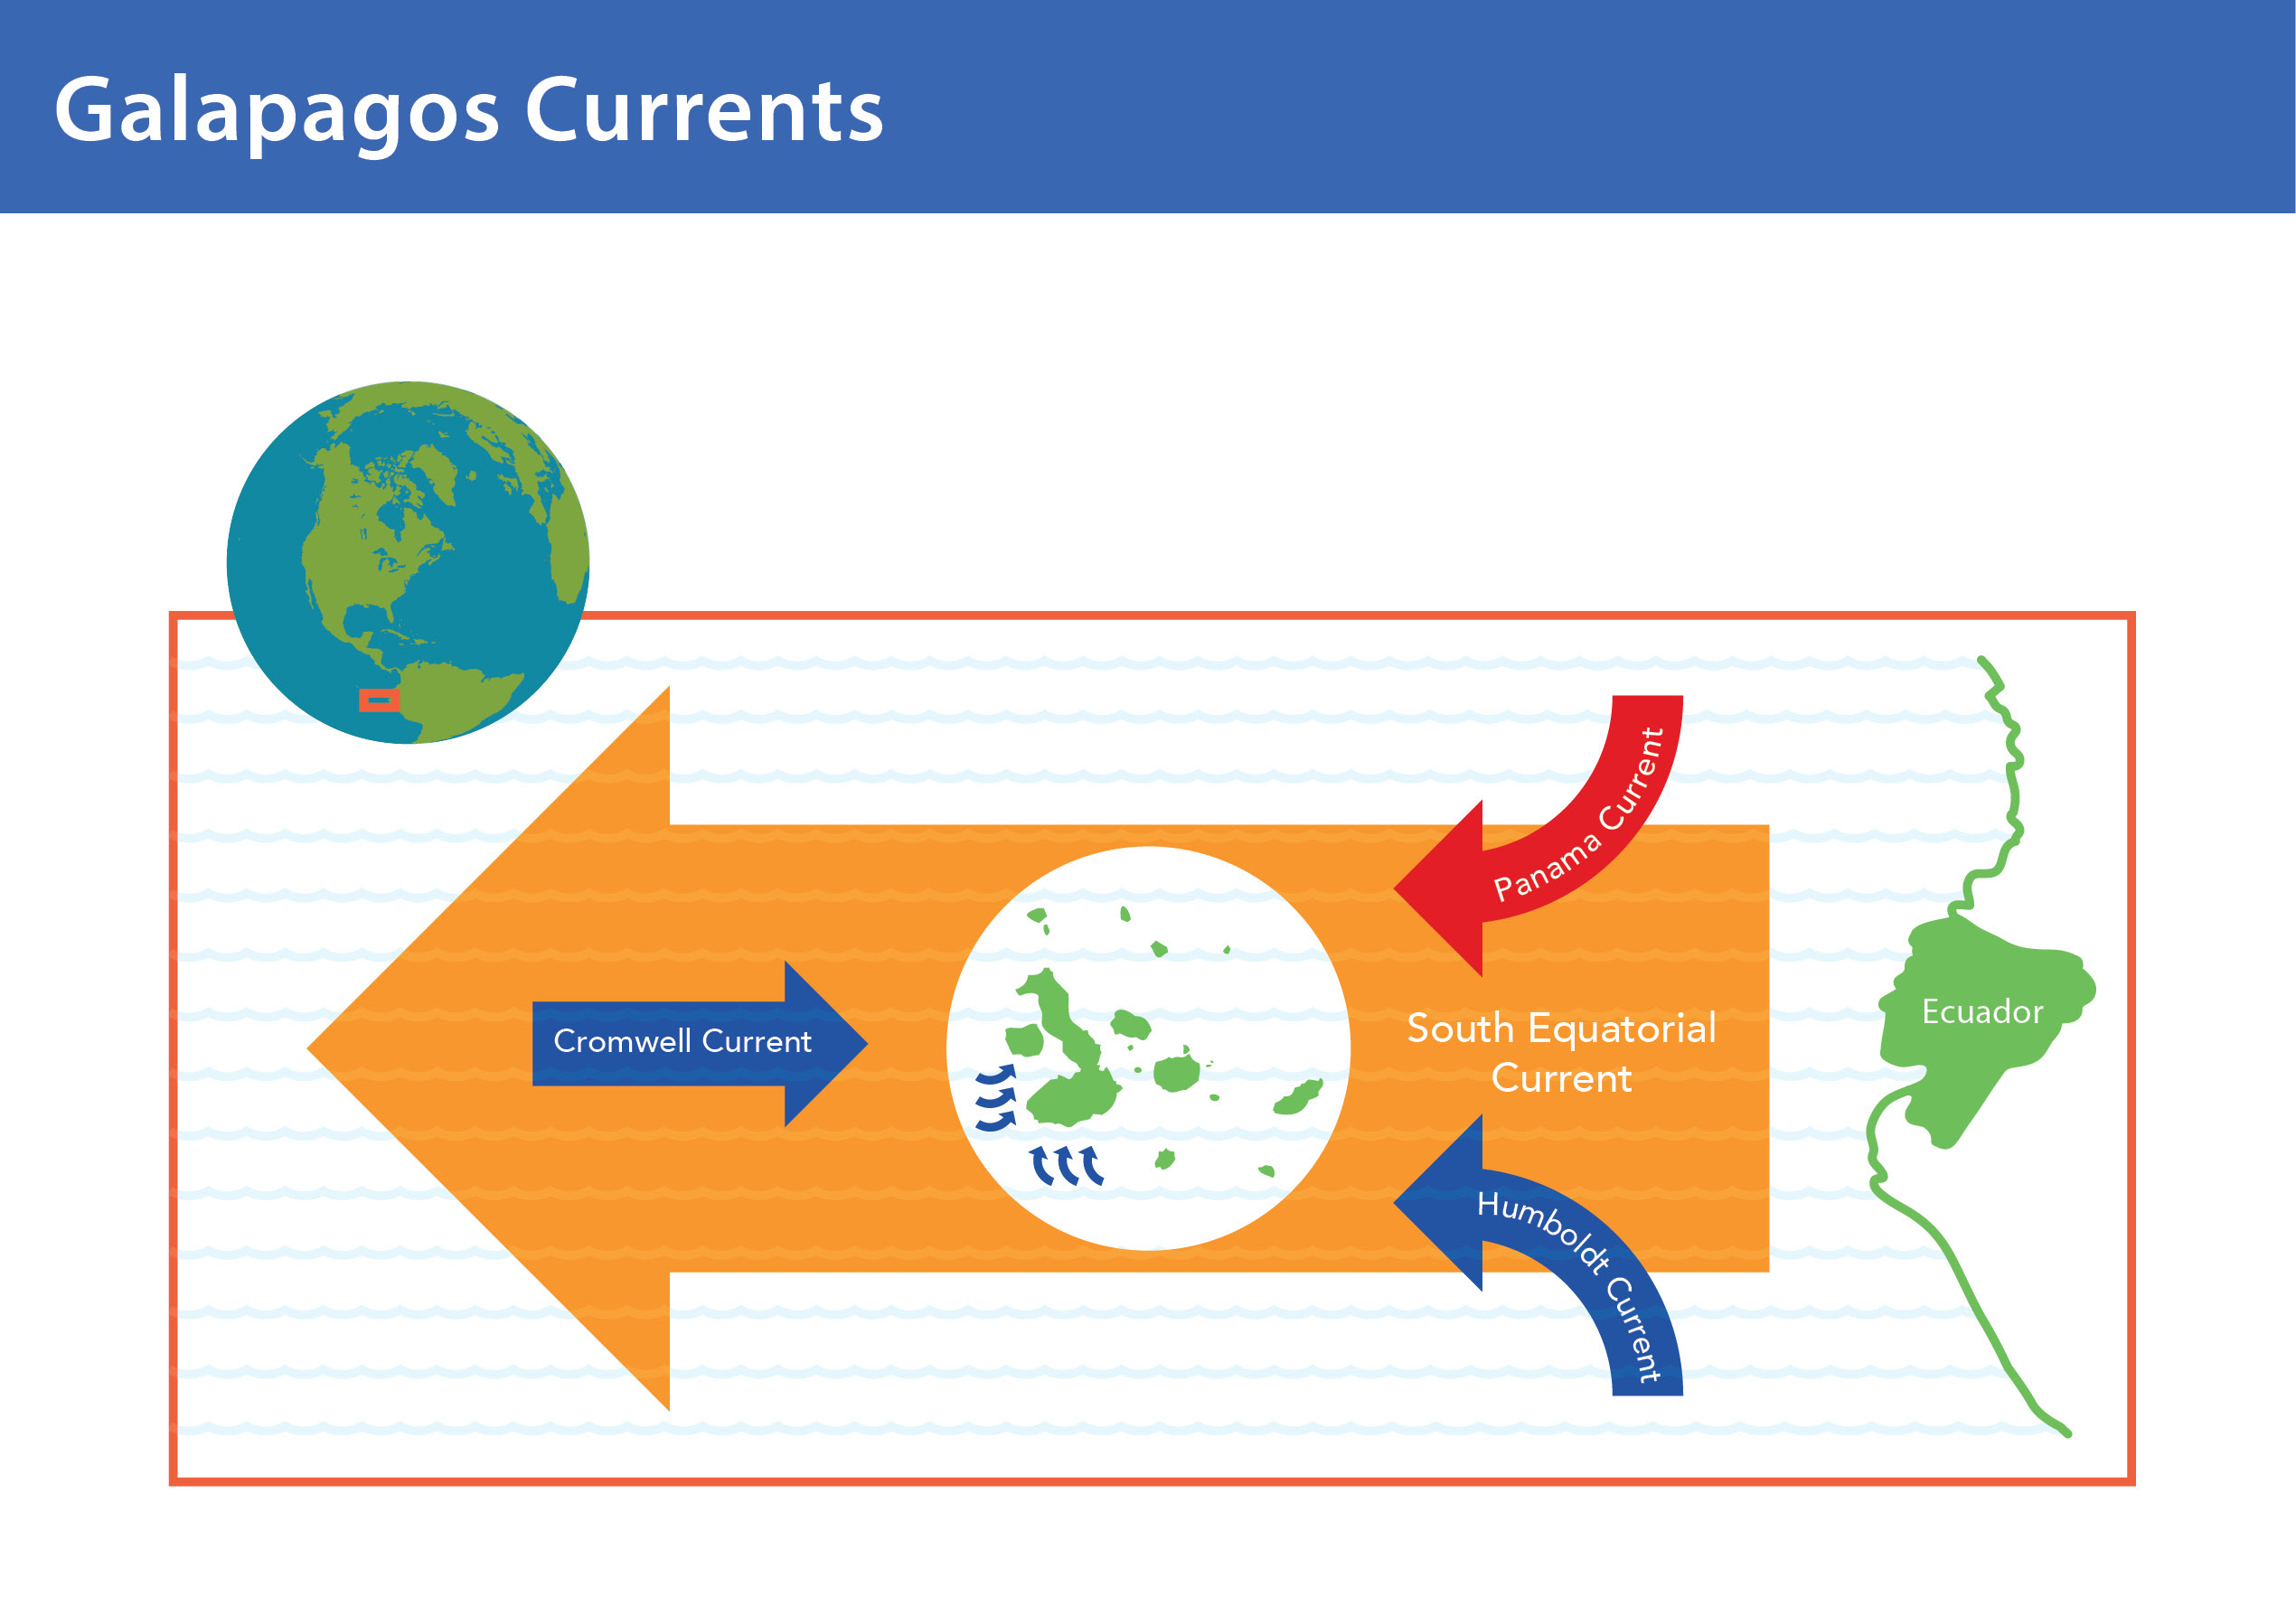 Currents of the Galapagos Islands